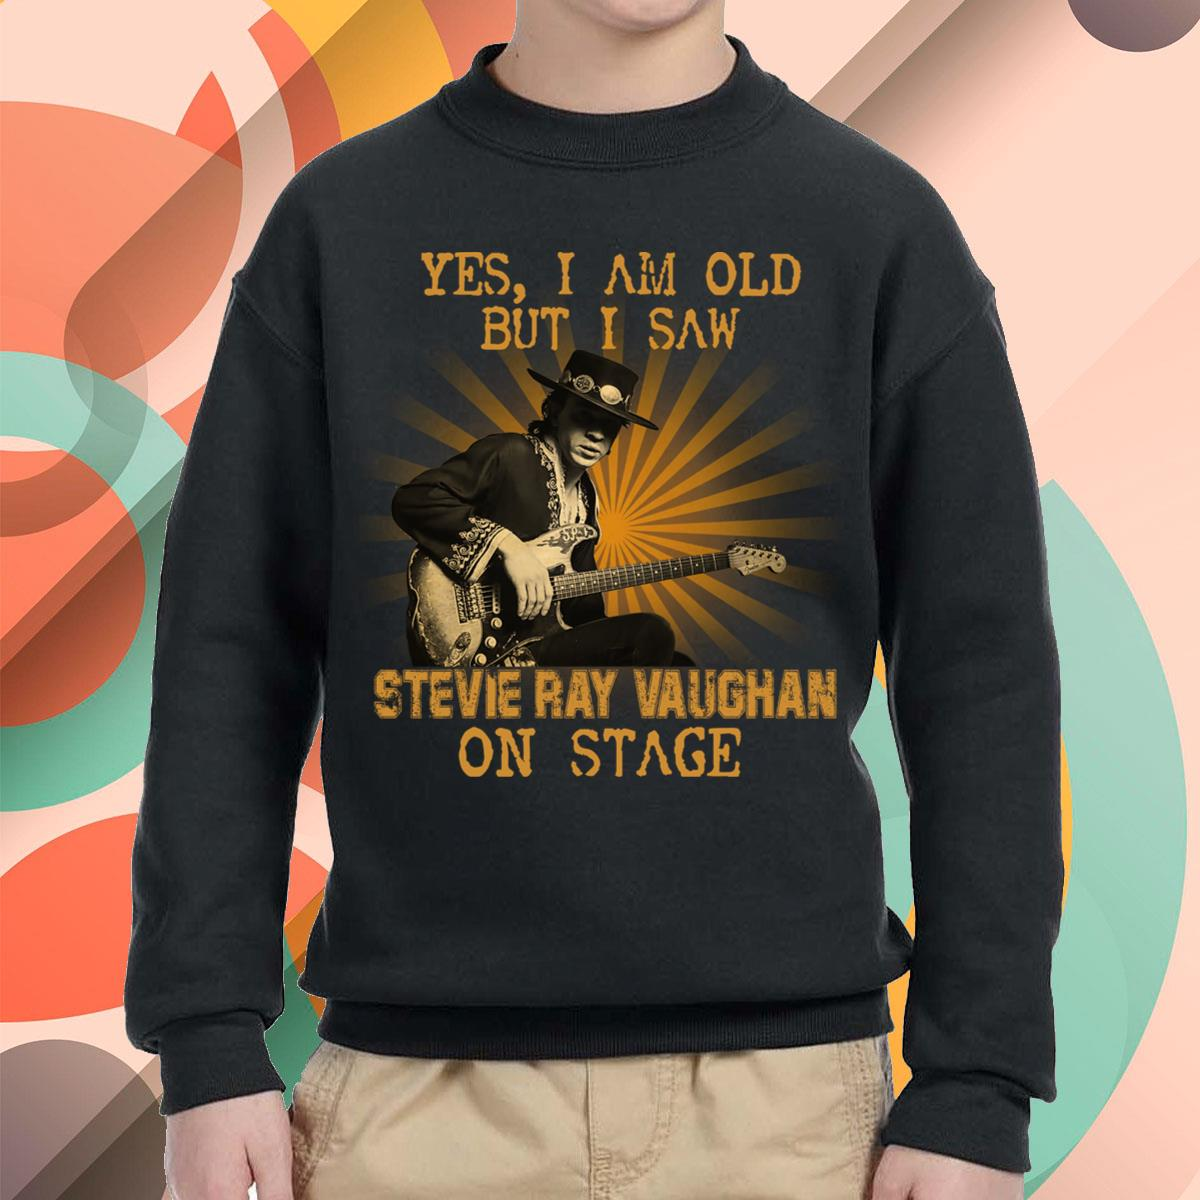 I Am Old But I Saw Stevie Ray Vaughan Youth Sweatshirt